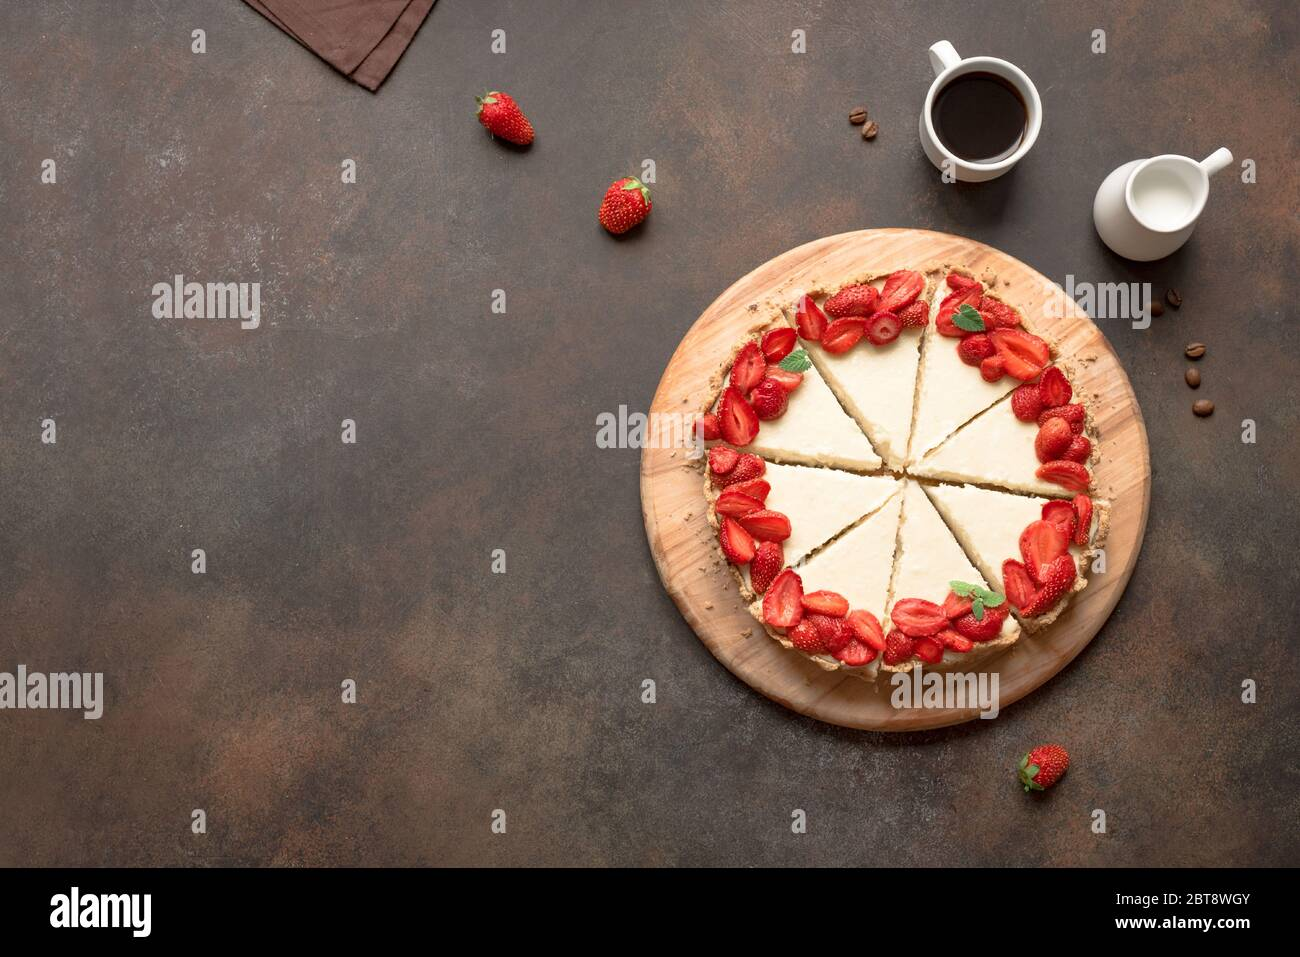 Cheesecake with strawberries and coffee, top view, copy space. Slice of homemade cheese cake and sauteed berries, delicious desert. Stock Photo